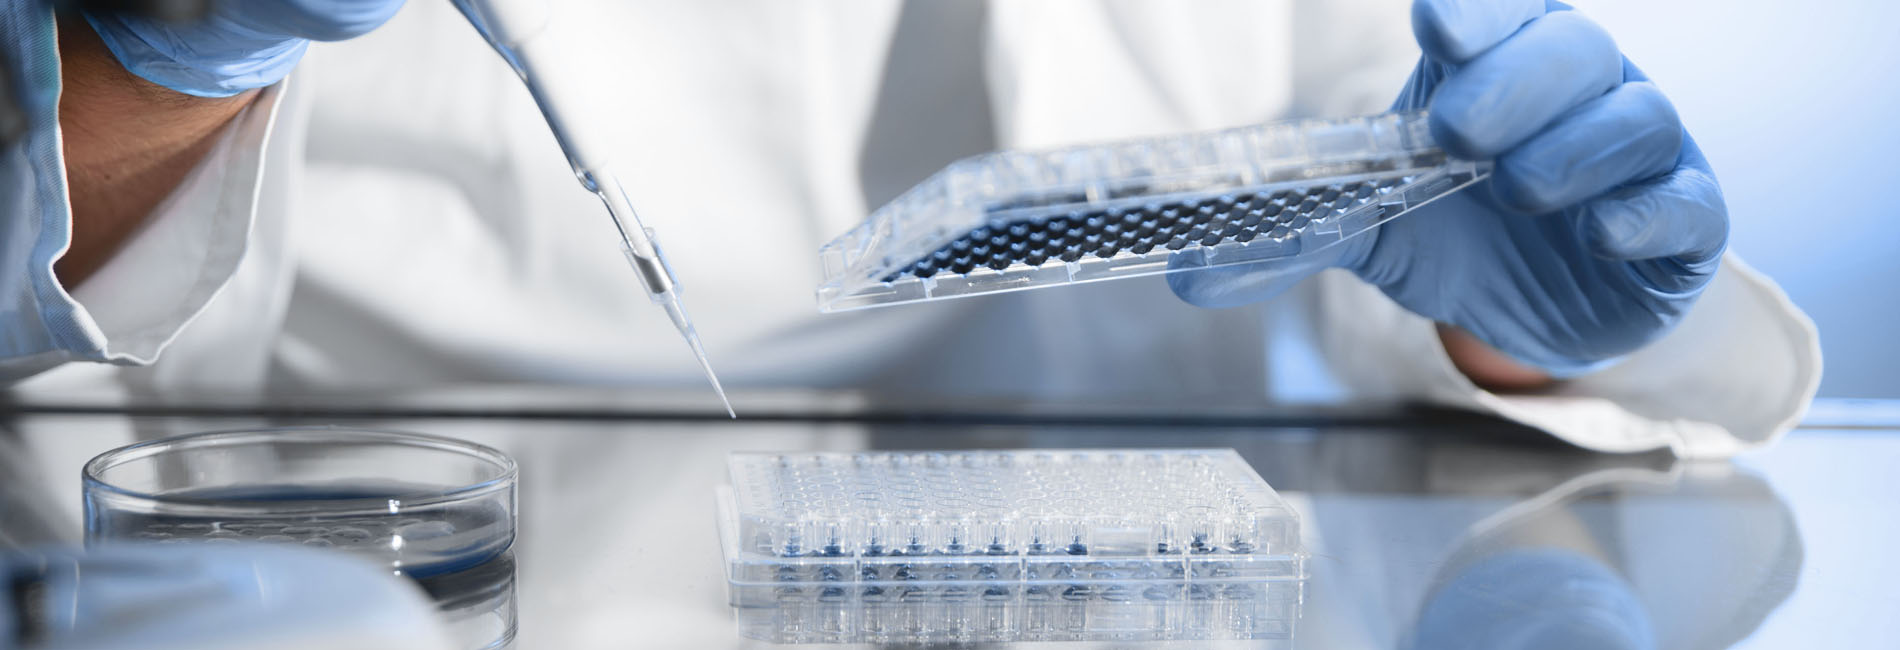 Scientist transferring liquid into microwell plates using a pipette